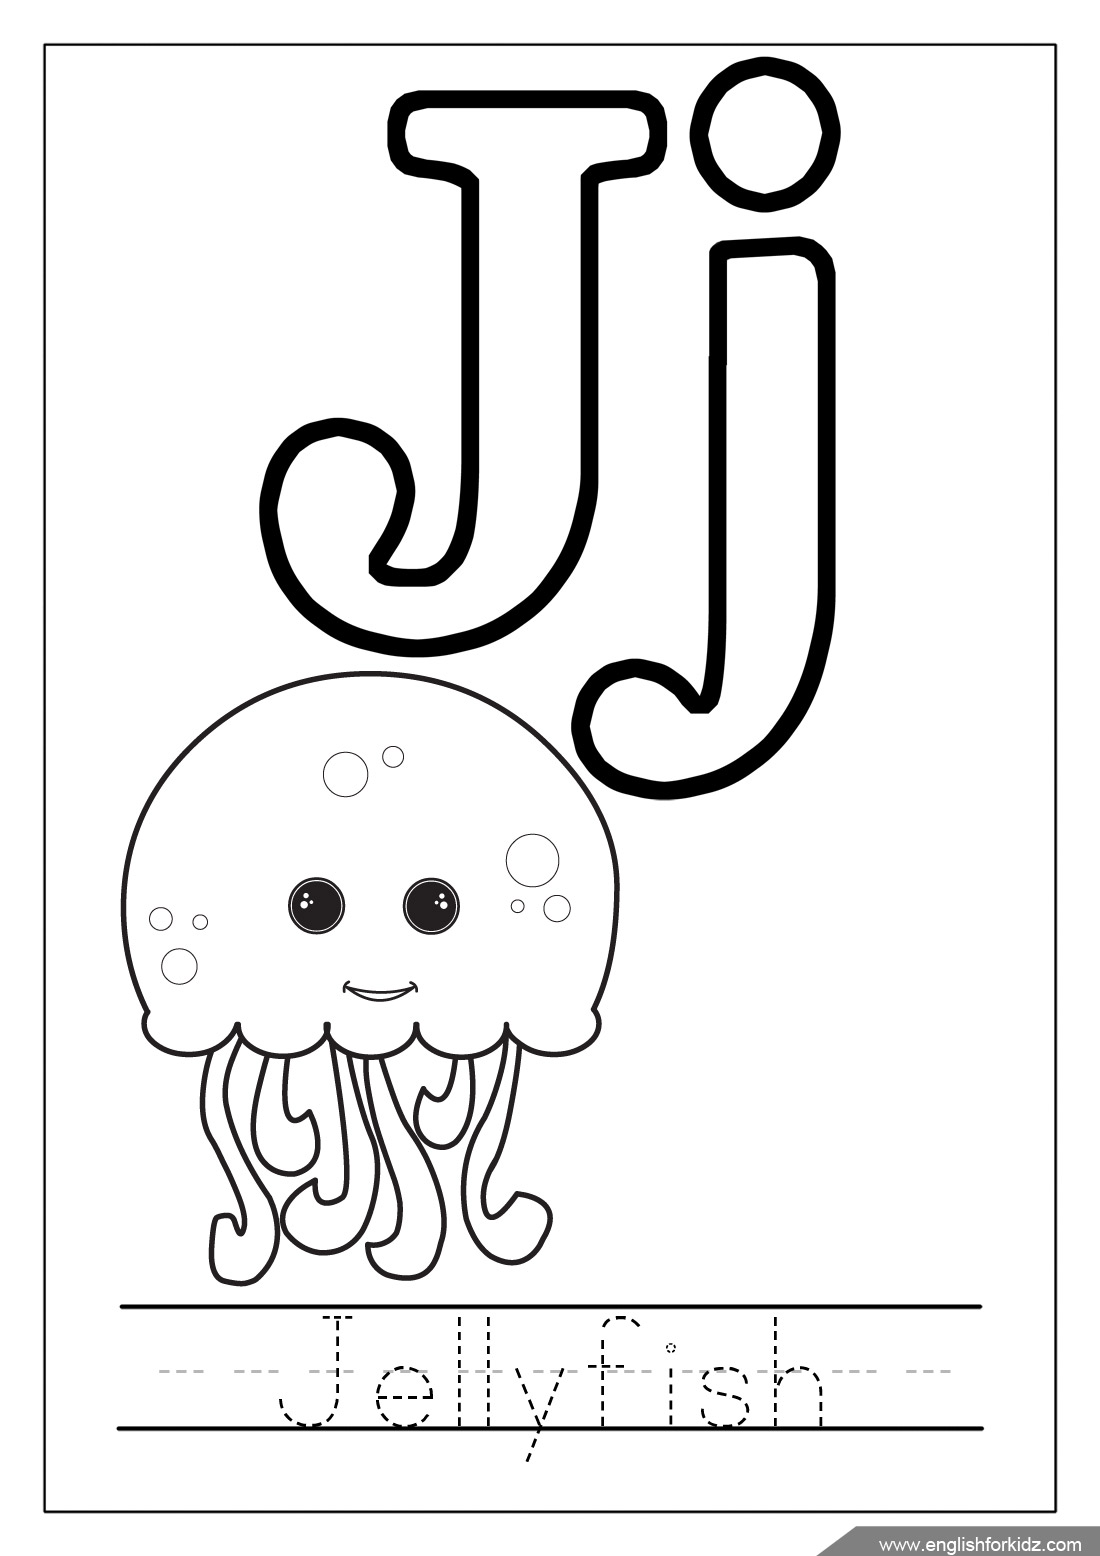 Printable Alphabet Coloring Pages (Letters A - J)